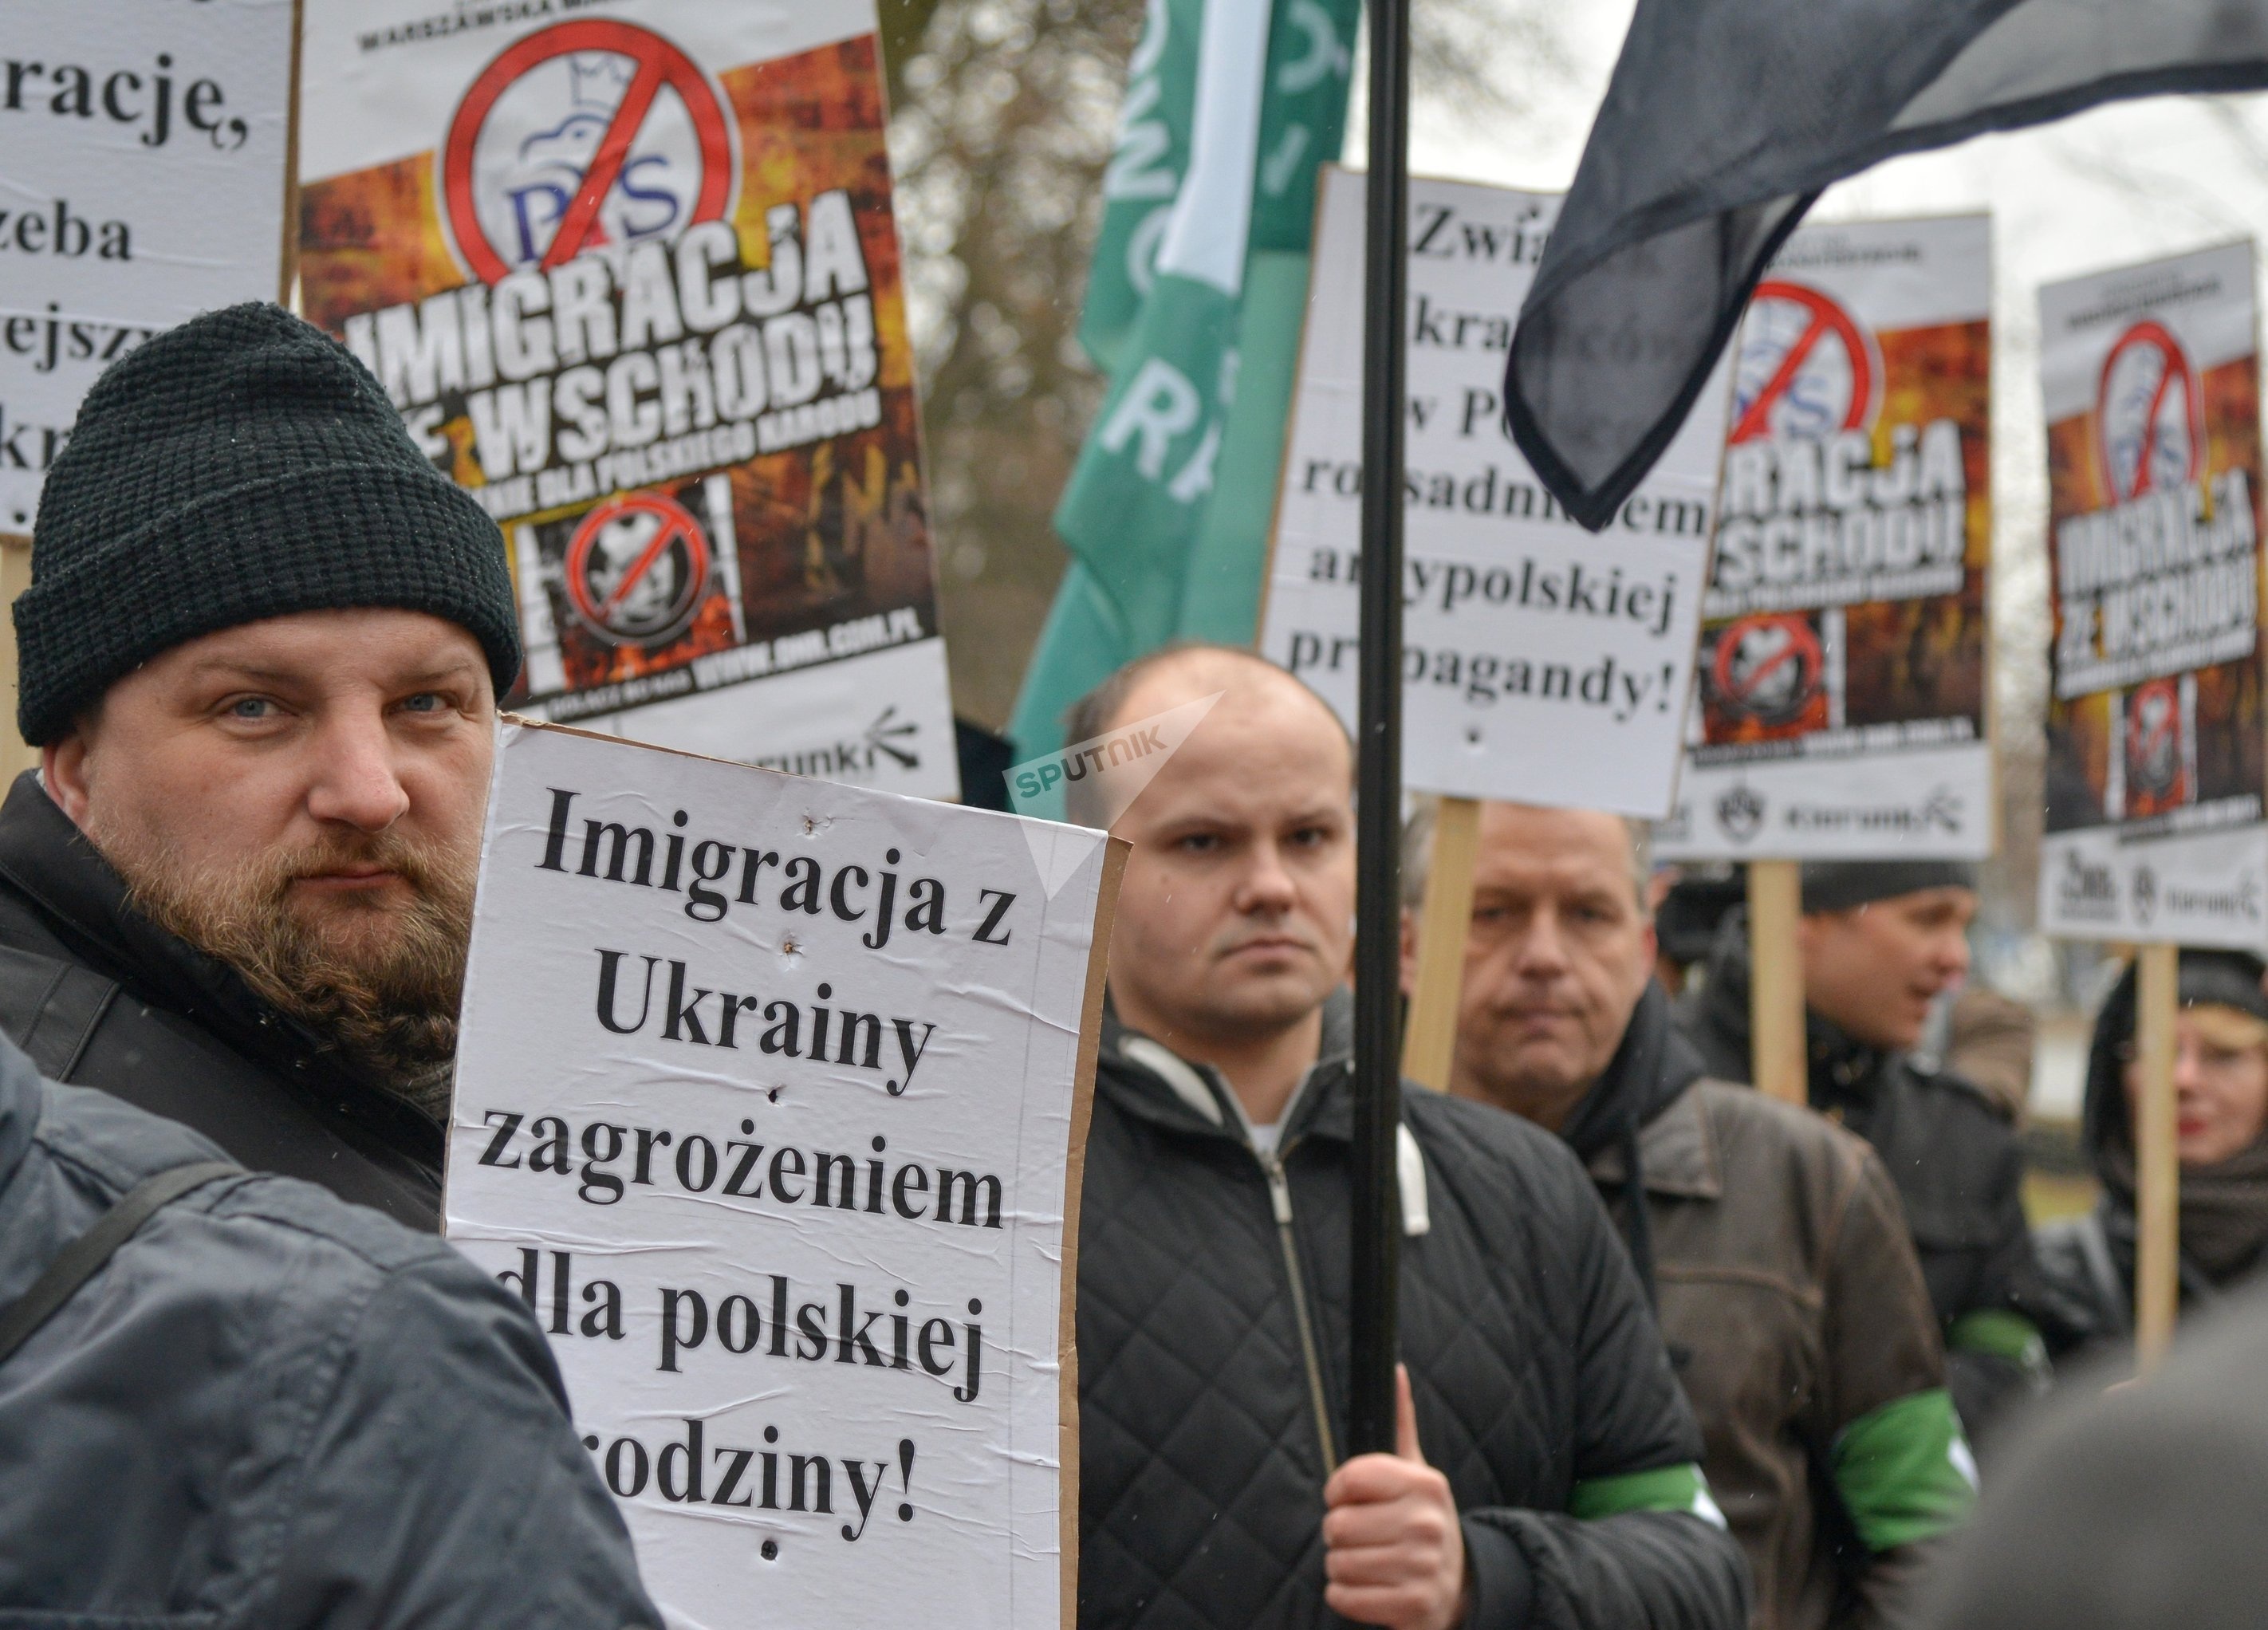 Rally in Warsaw against increased number of Ukrainian immigrants